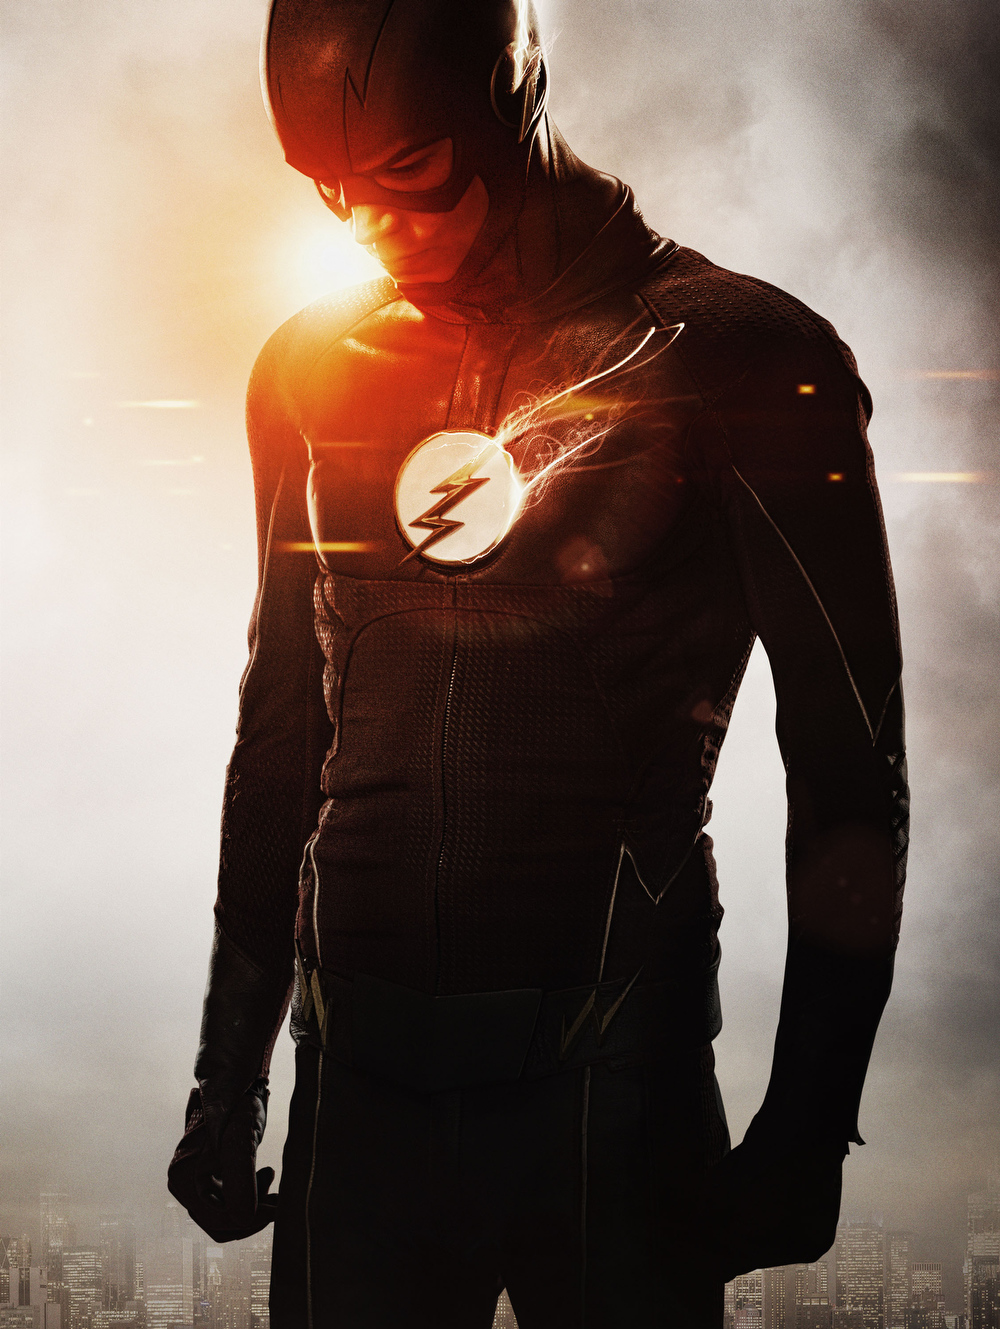 CW's The Flash has a New Costume! ~ What'cha Reading?